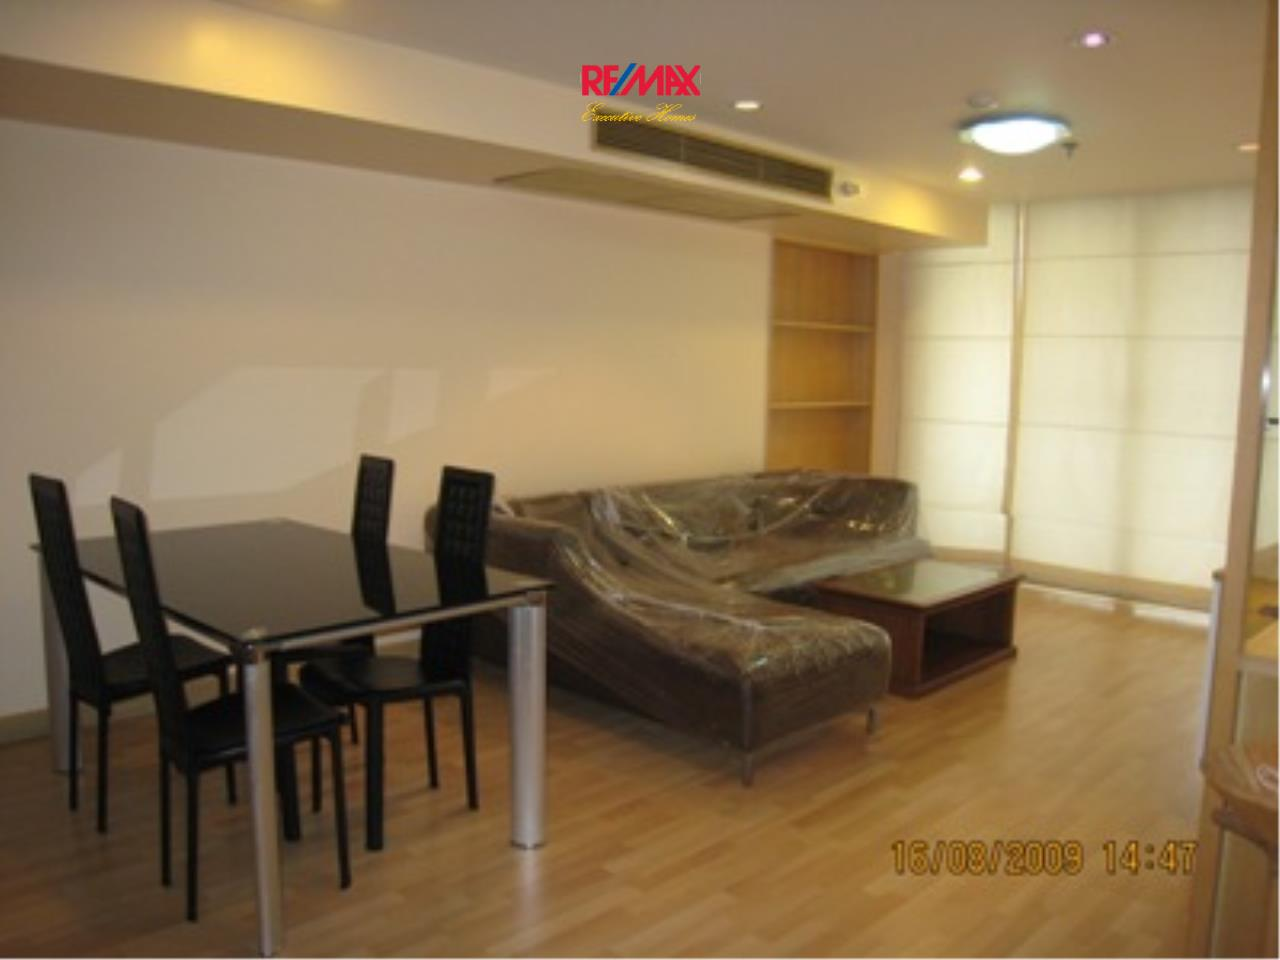 RE/MAX Executive Homes Agency's Spacious 1 Bedroom for Rent and Sale Asoke Place 1